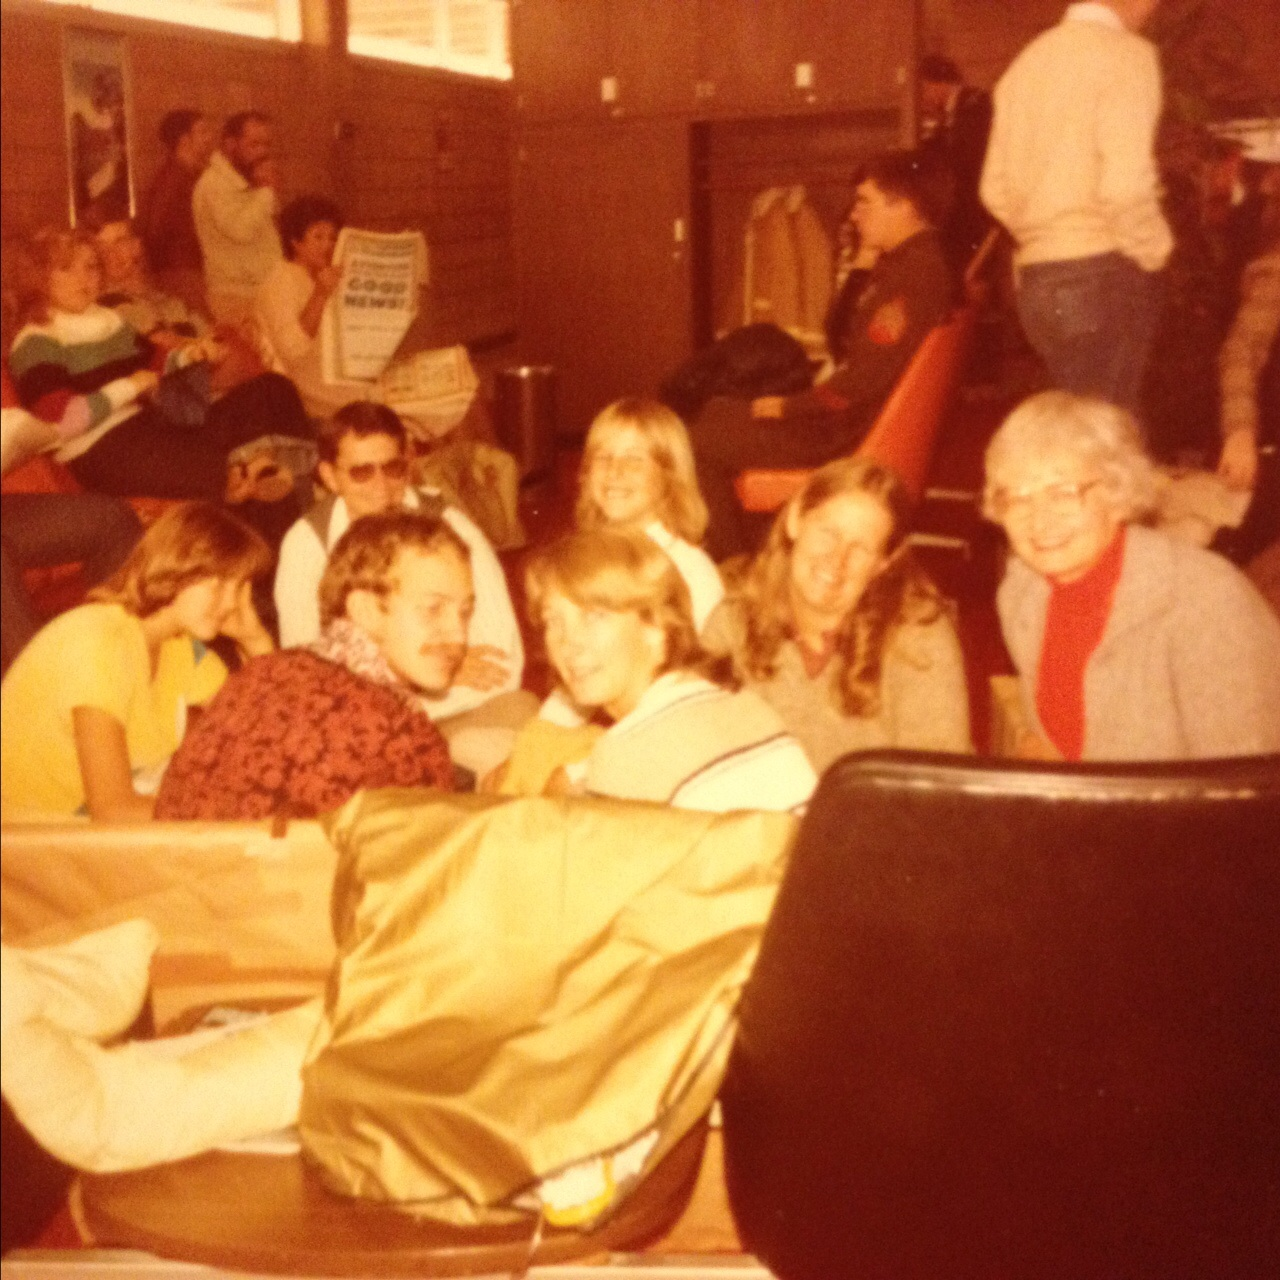 Of course, the center of the world rarely shows up in pictures, but here's a rare sighting. Mom and Gramma are rightmost. San Diego airport, 1980, waiting for the plane that will take us away from our sun-kissed coast to Pittsburgh, PA.